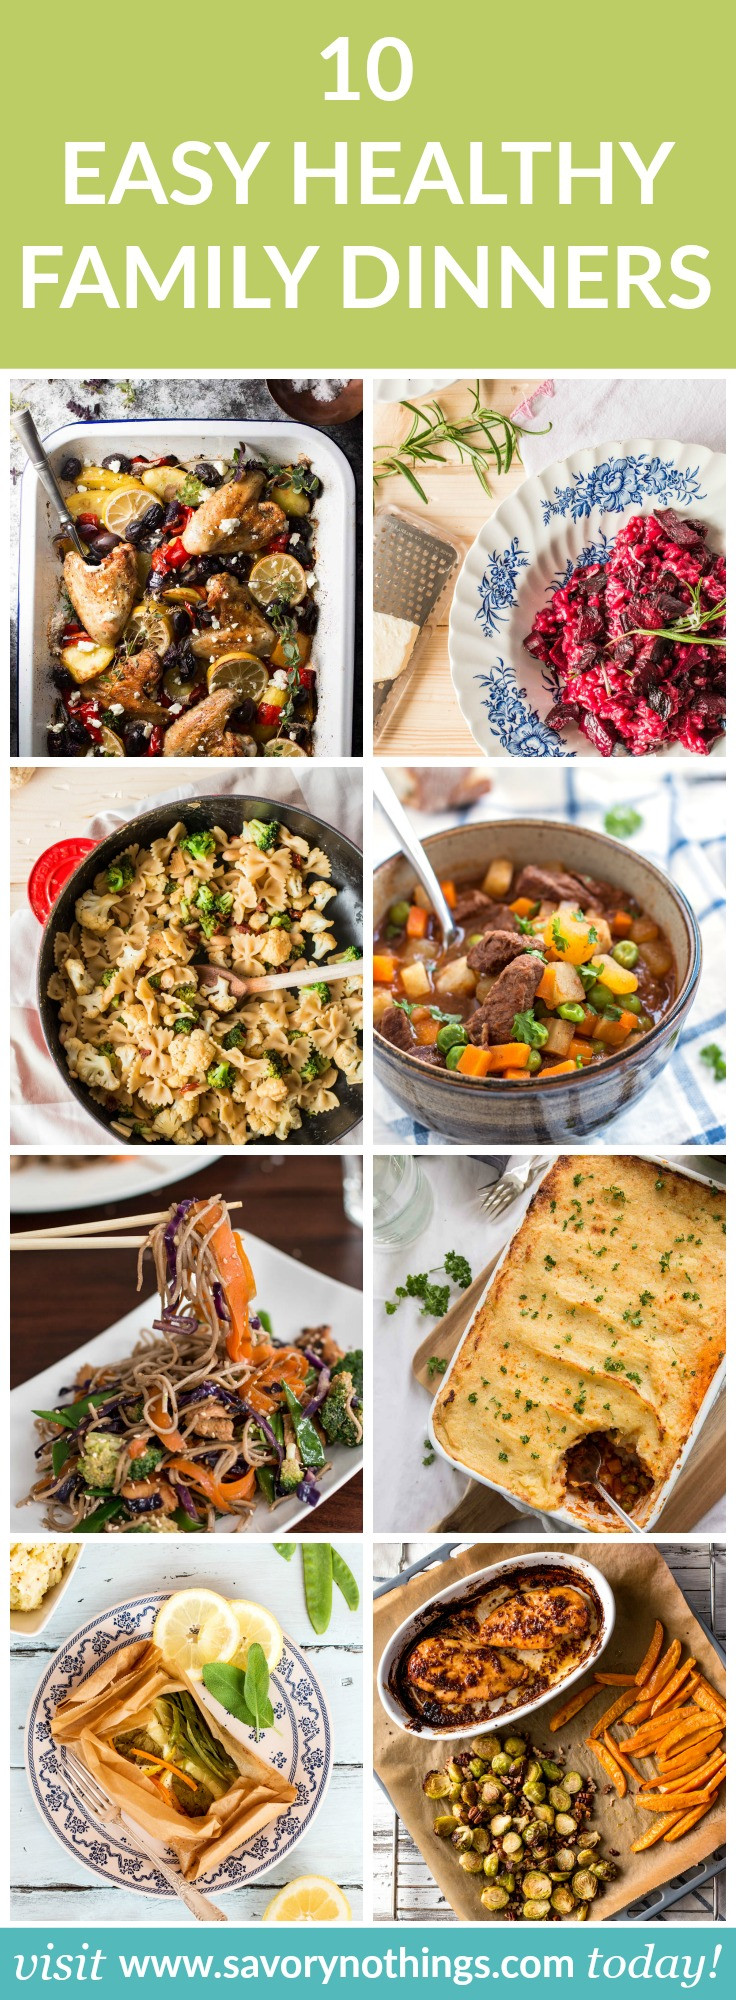 Simple Family Dinners  10 Healthy Family Dinners Easy Recipes for Busy Weeknights